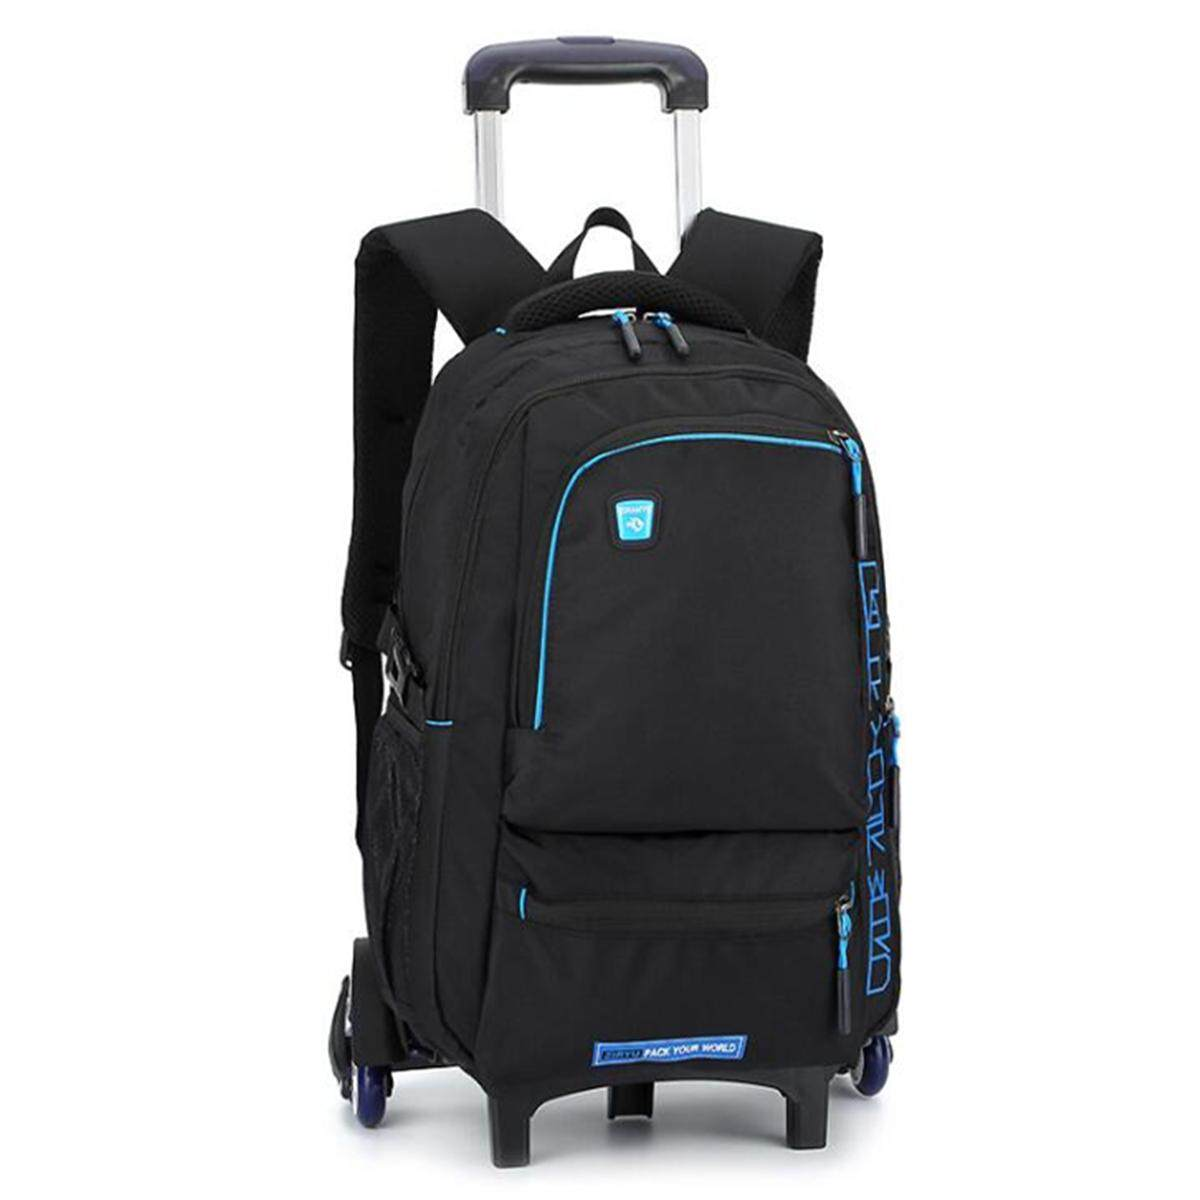 09ef56ce3b67 Kids Boys Student Six-wheel High Feet Detachable Trolley Backpack School  Bags